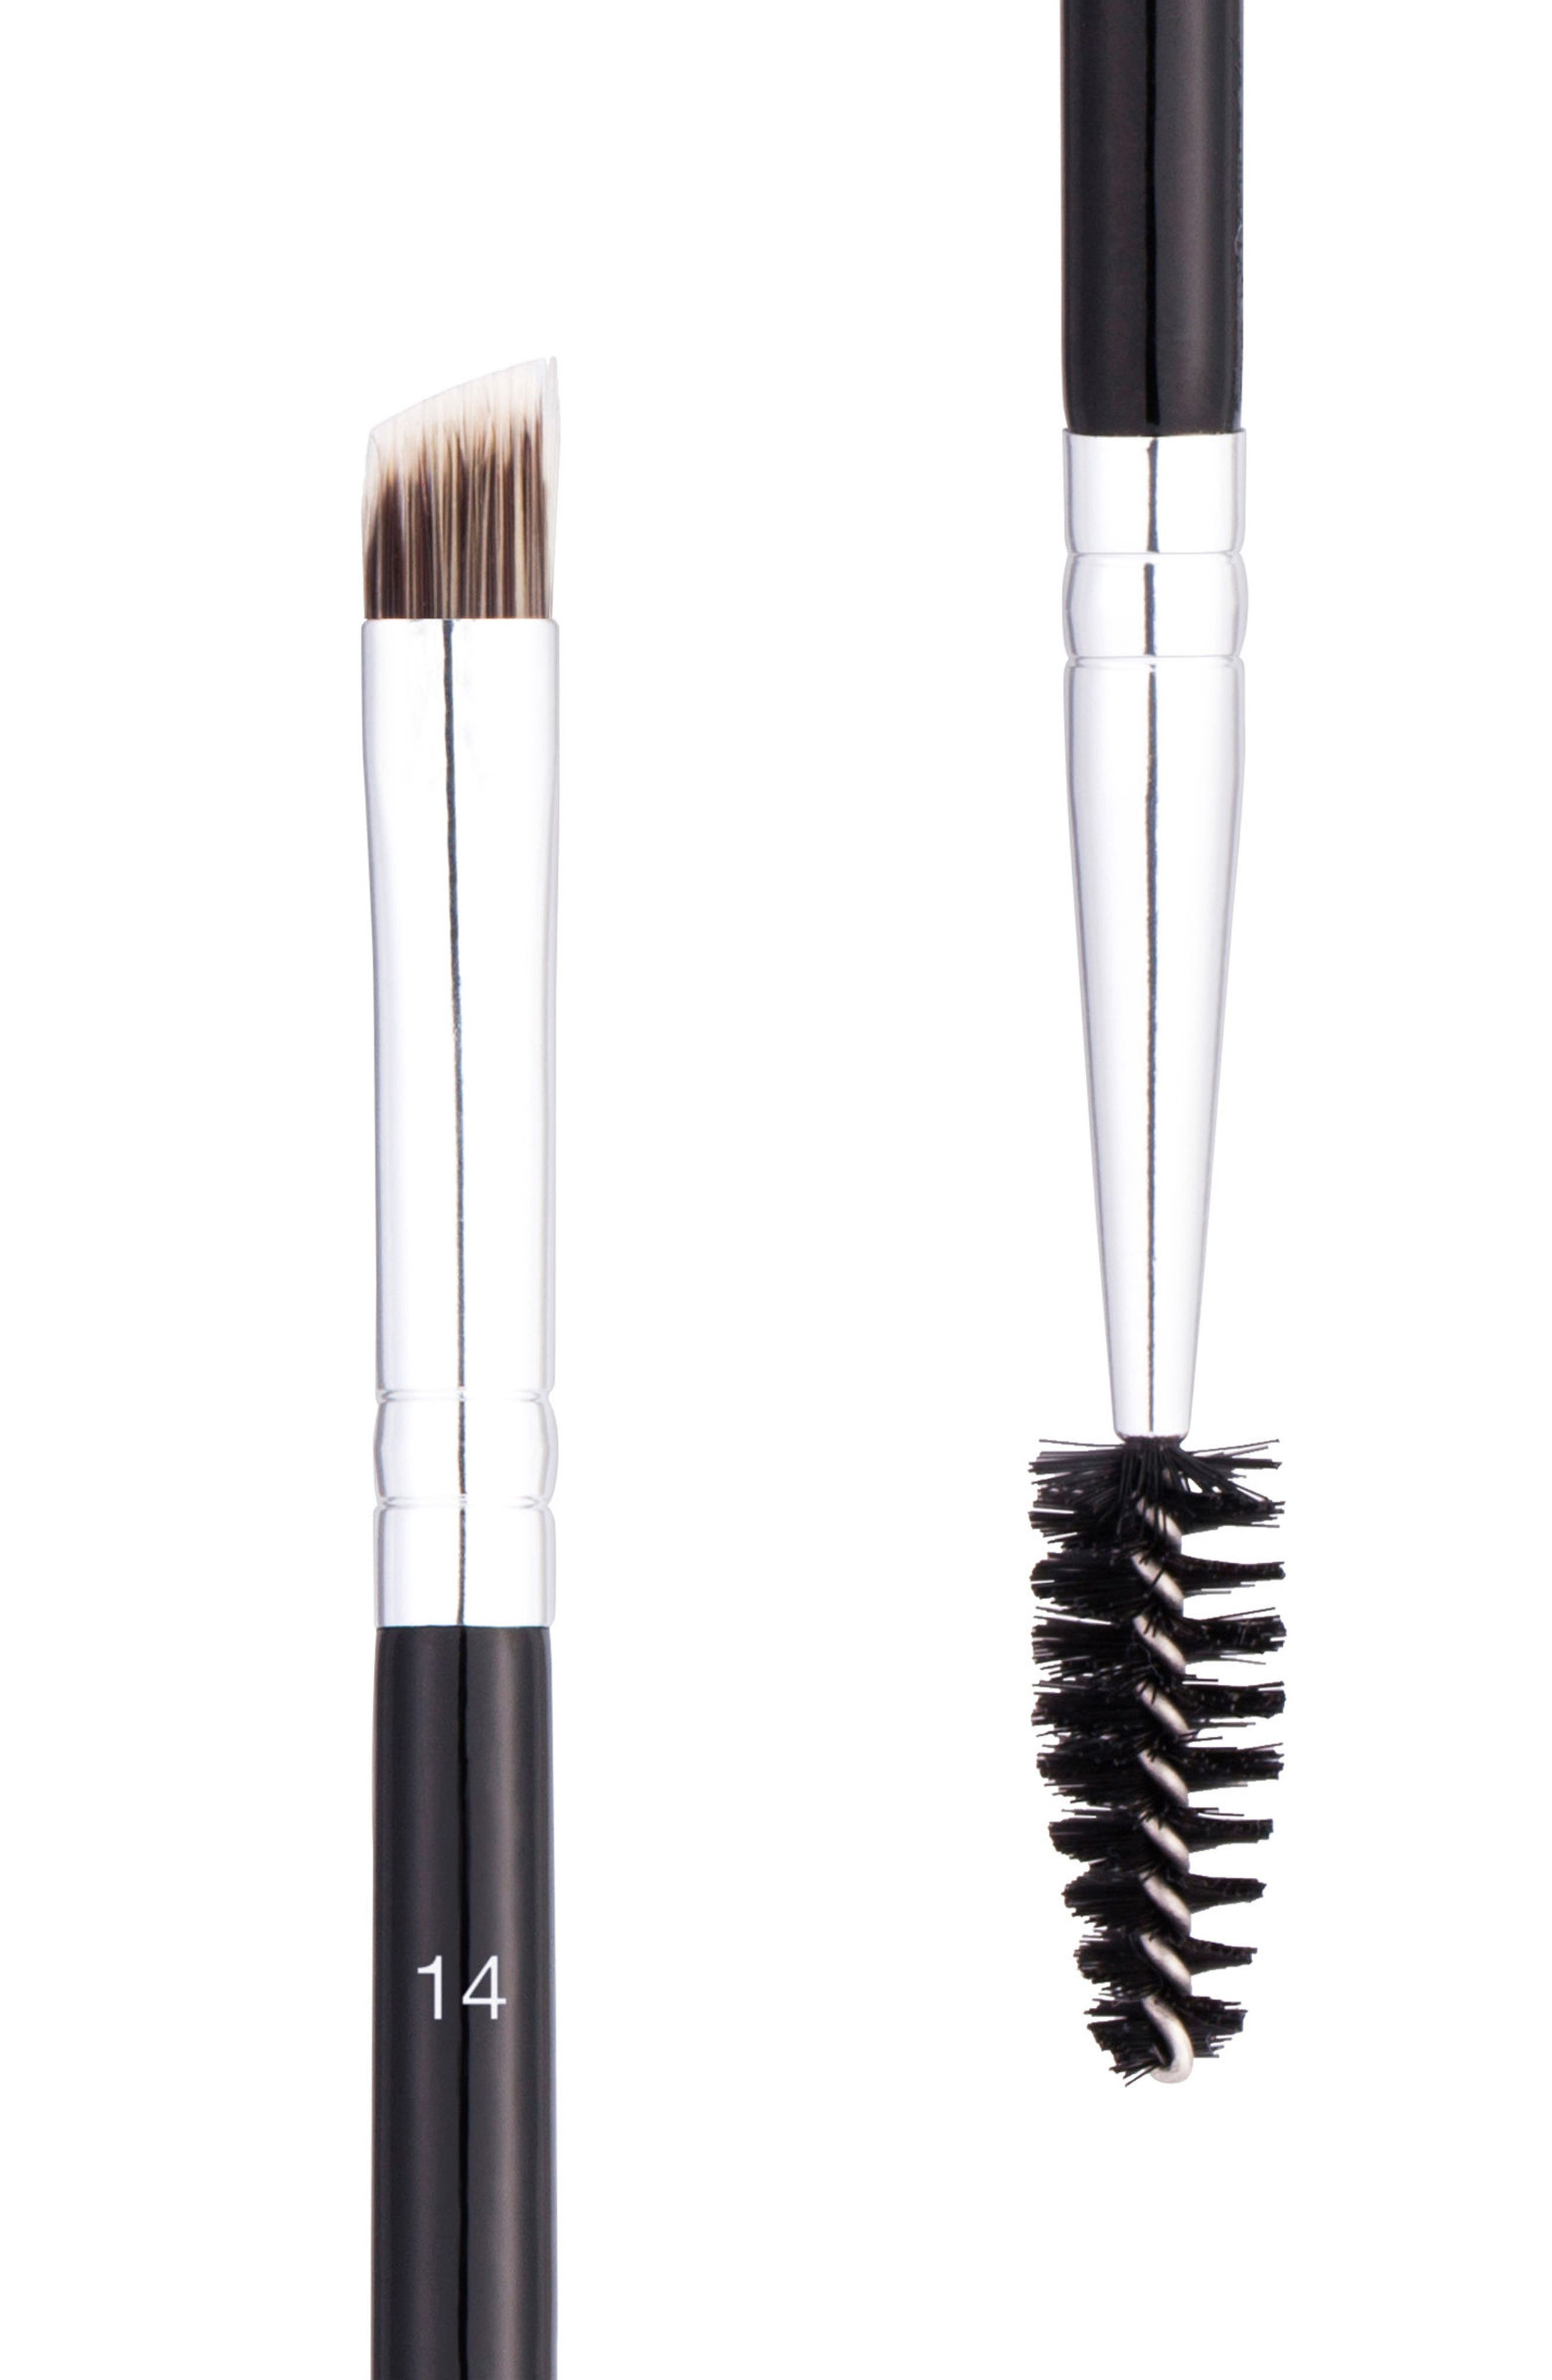 Alternate Image 2  - Anastasia Beverly Hills #14 Dual-Sided Brow & Eyeliner Brush